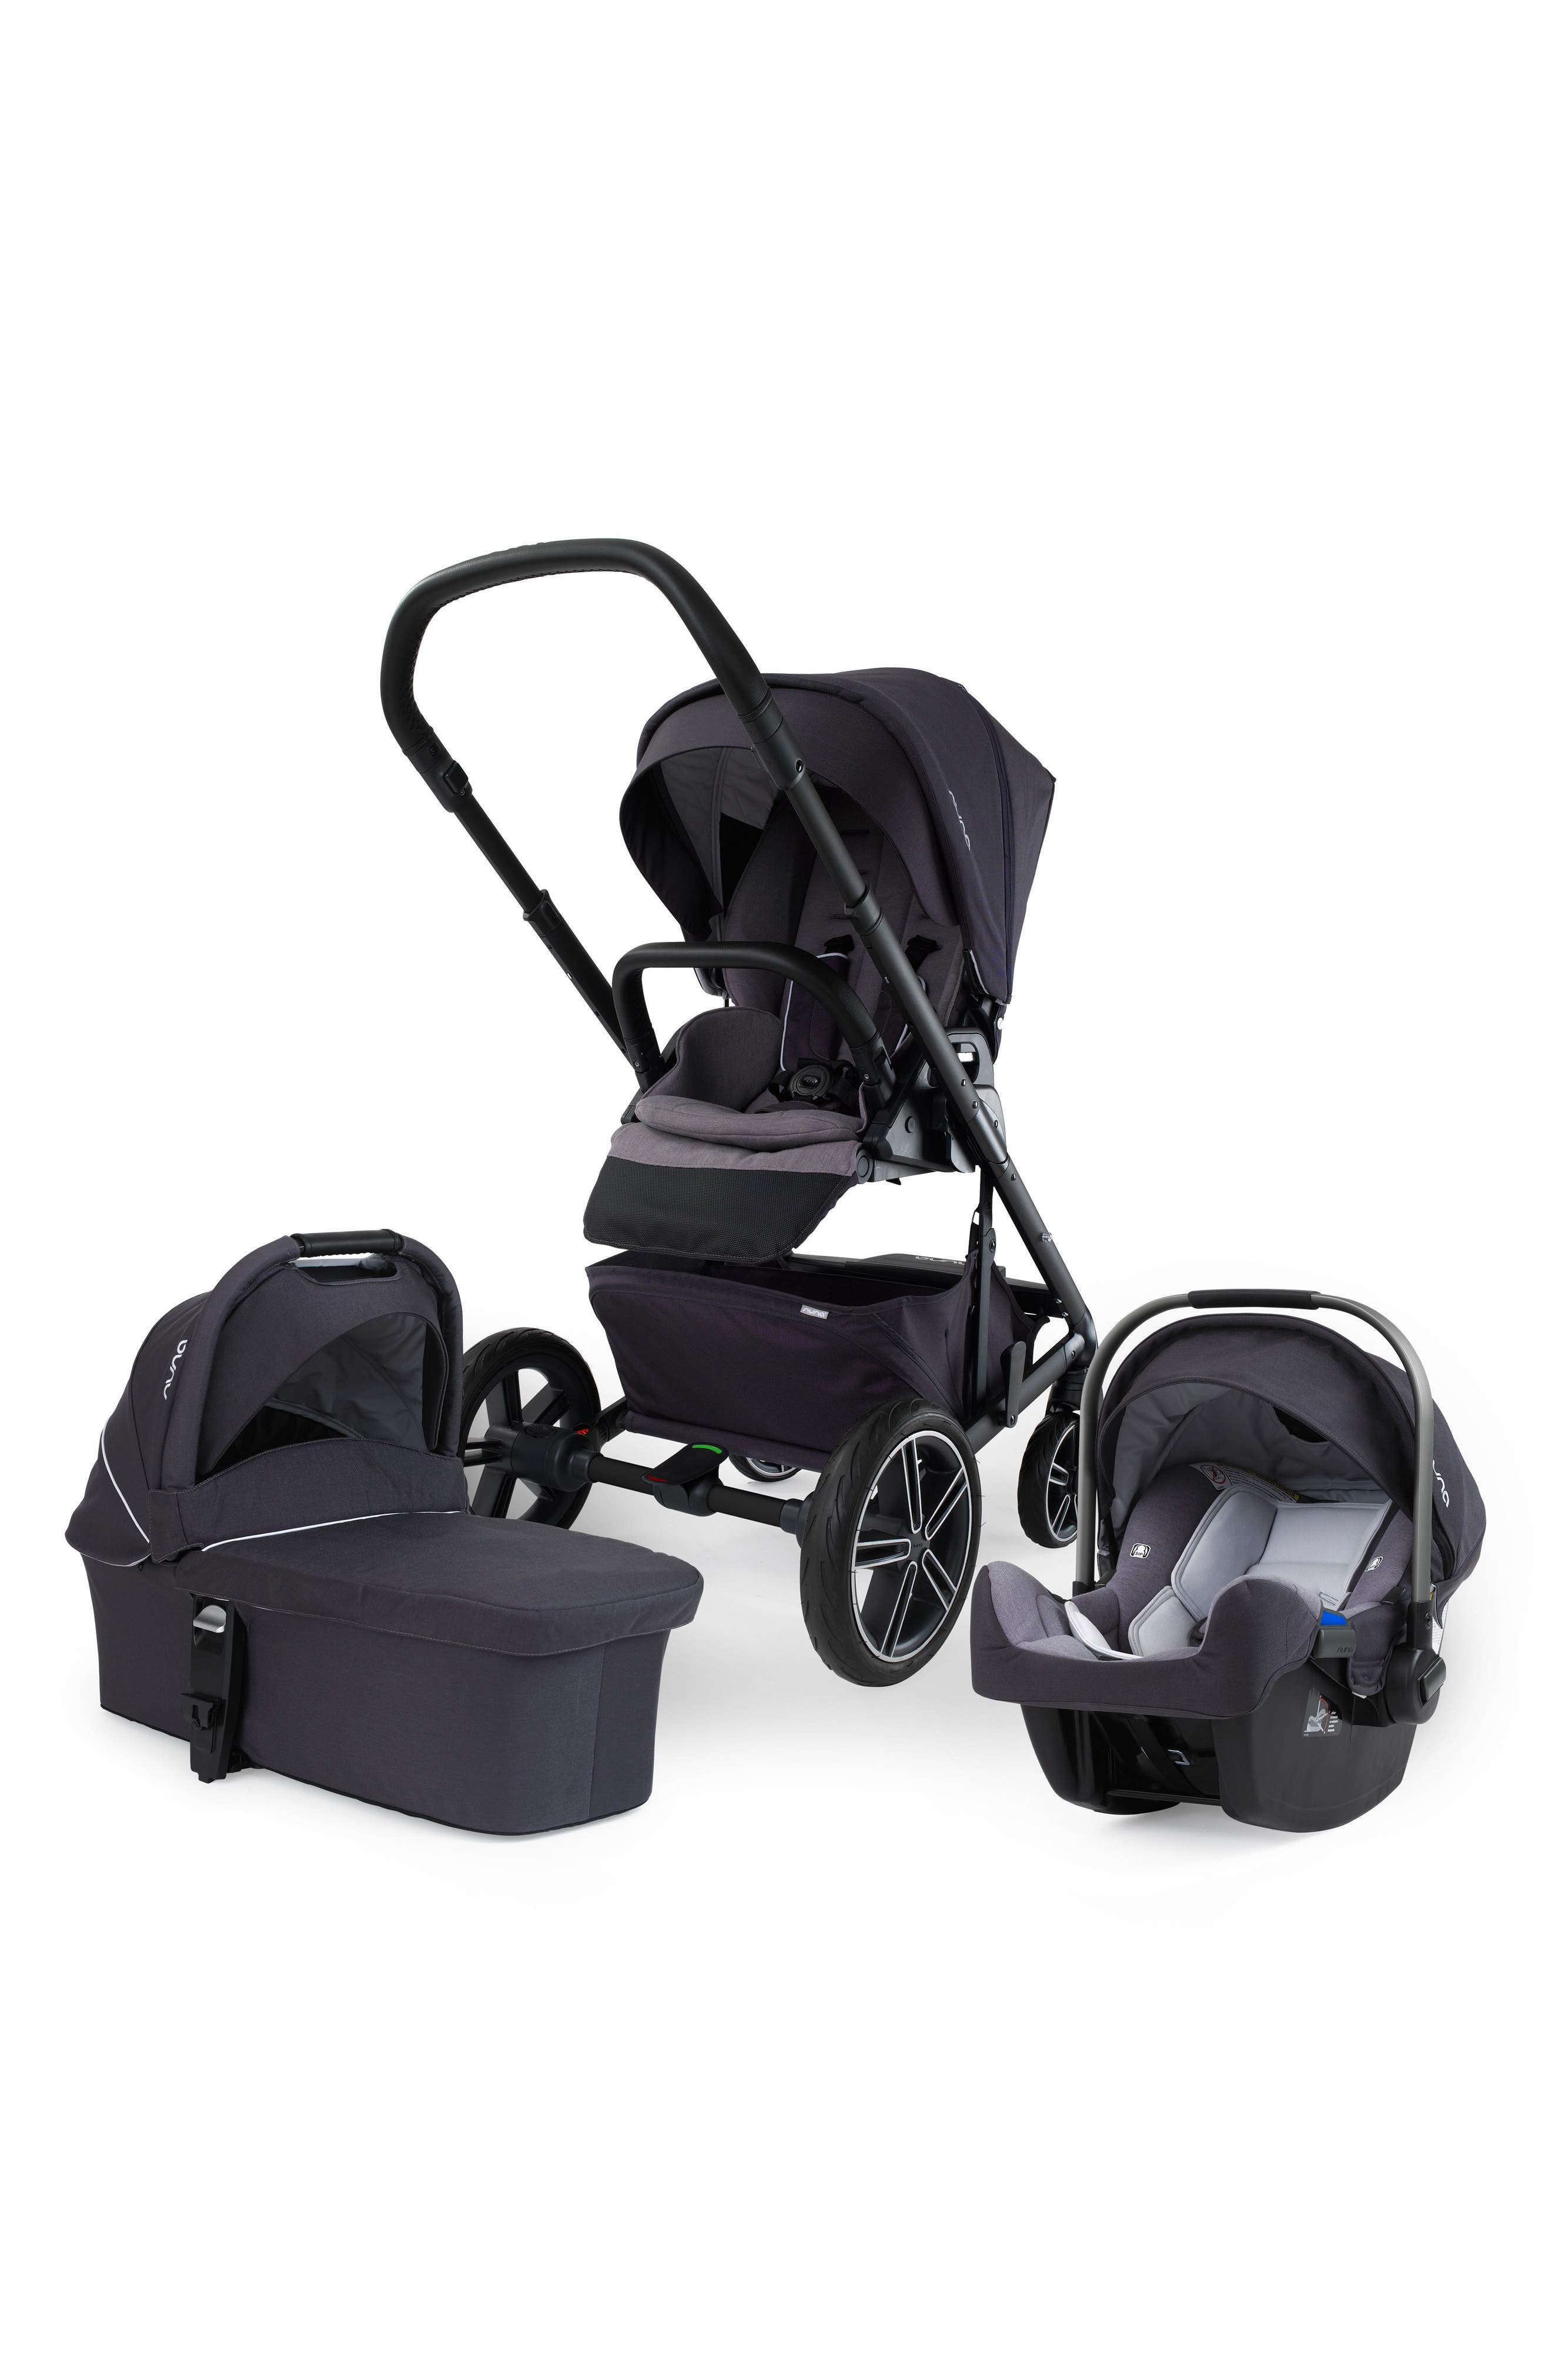 Alternate Image 1 Selected - nuna MIXX™ Stroller System & PIPA™ Car Seat Set